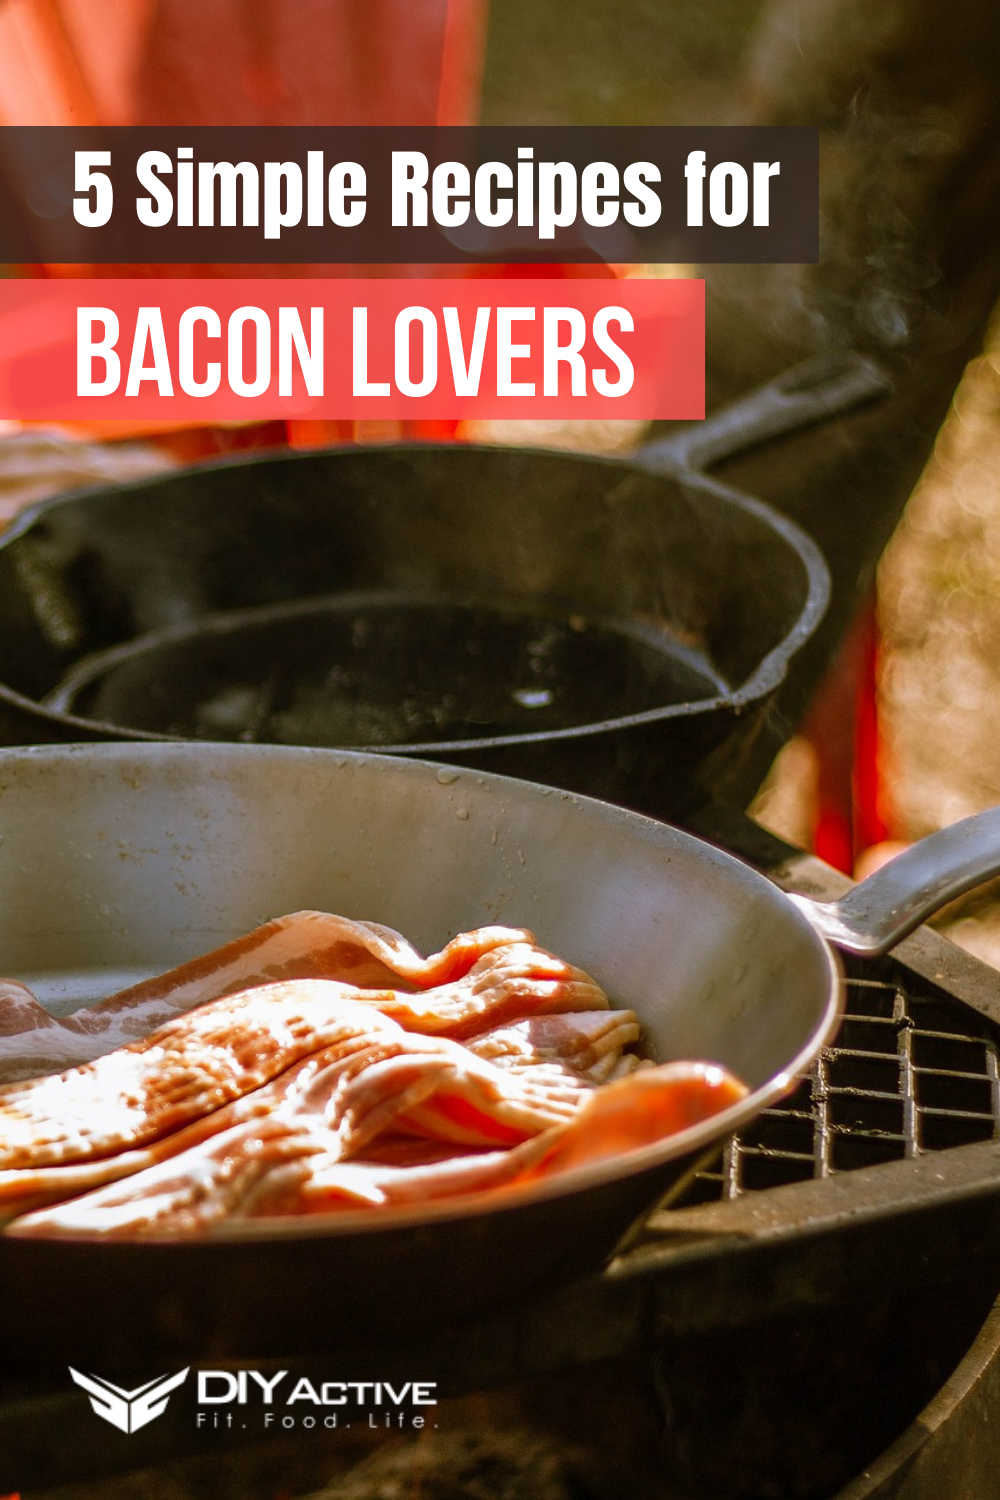 5 Simple Bacon Recipes For Bacon Lovers